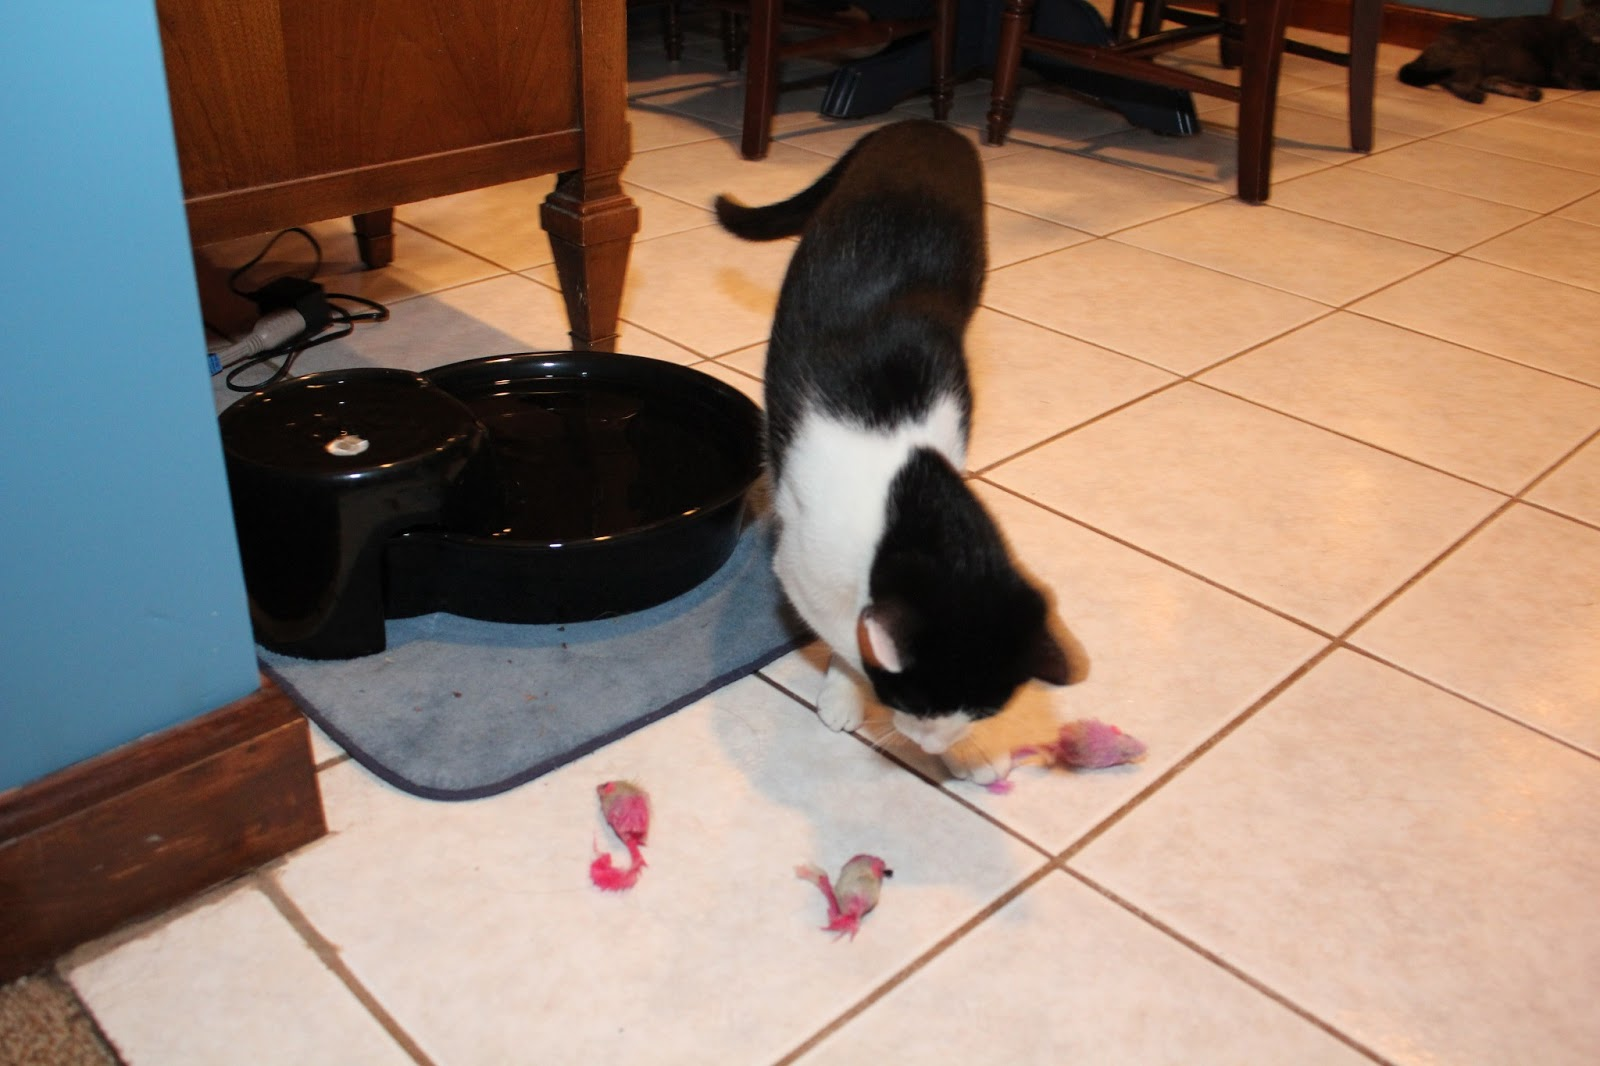 Cat plays with 3 wet toy mice